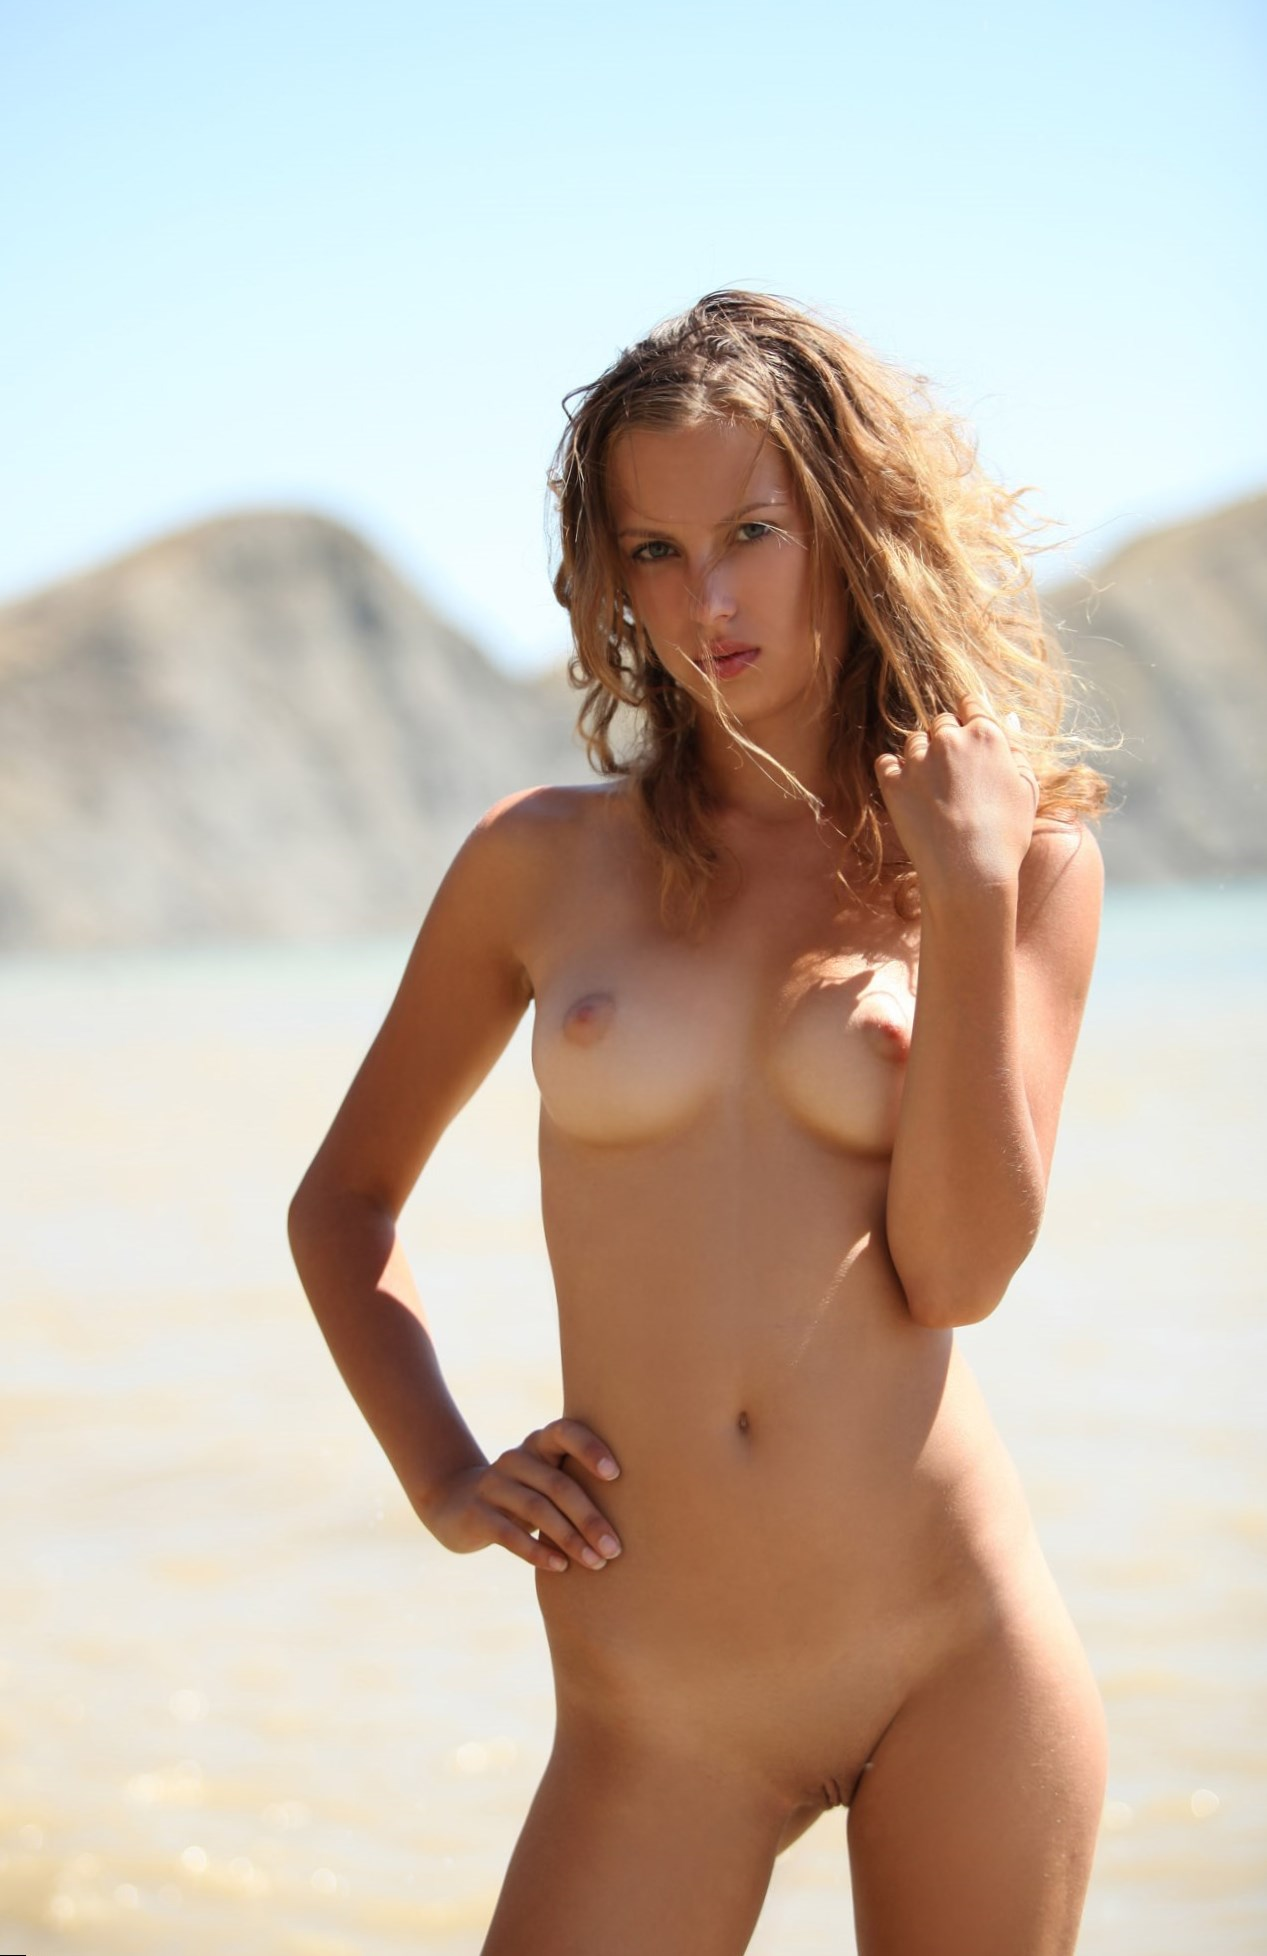 Mary Mccormack Nude Pics, Page